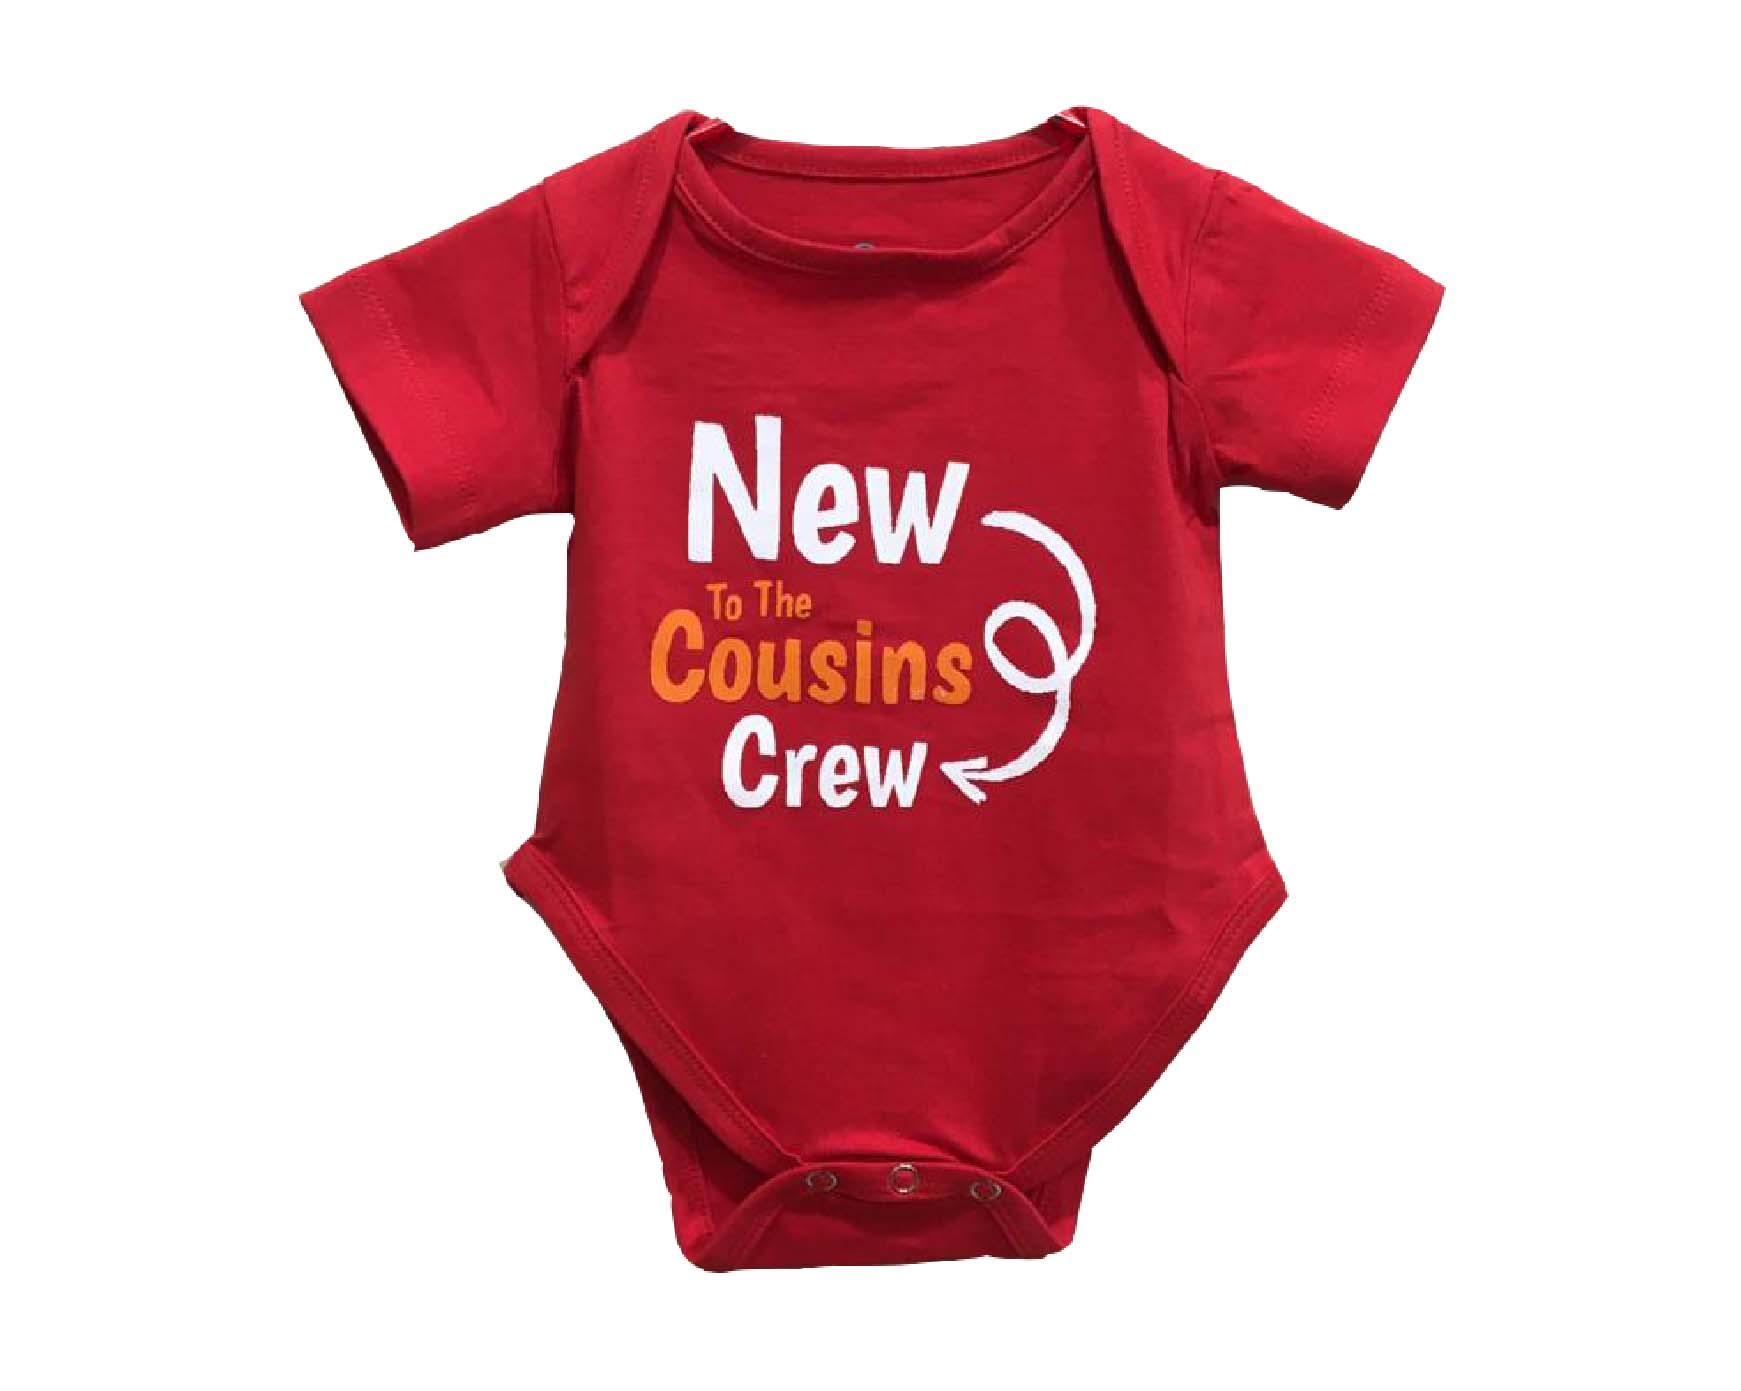 NEW-TO-THE-COUSINS-CREW.jpg